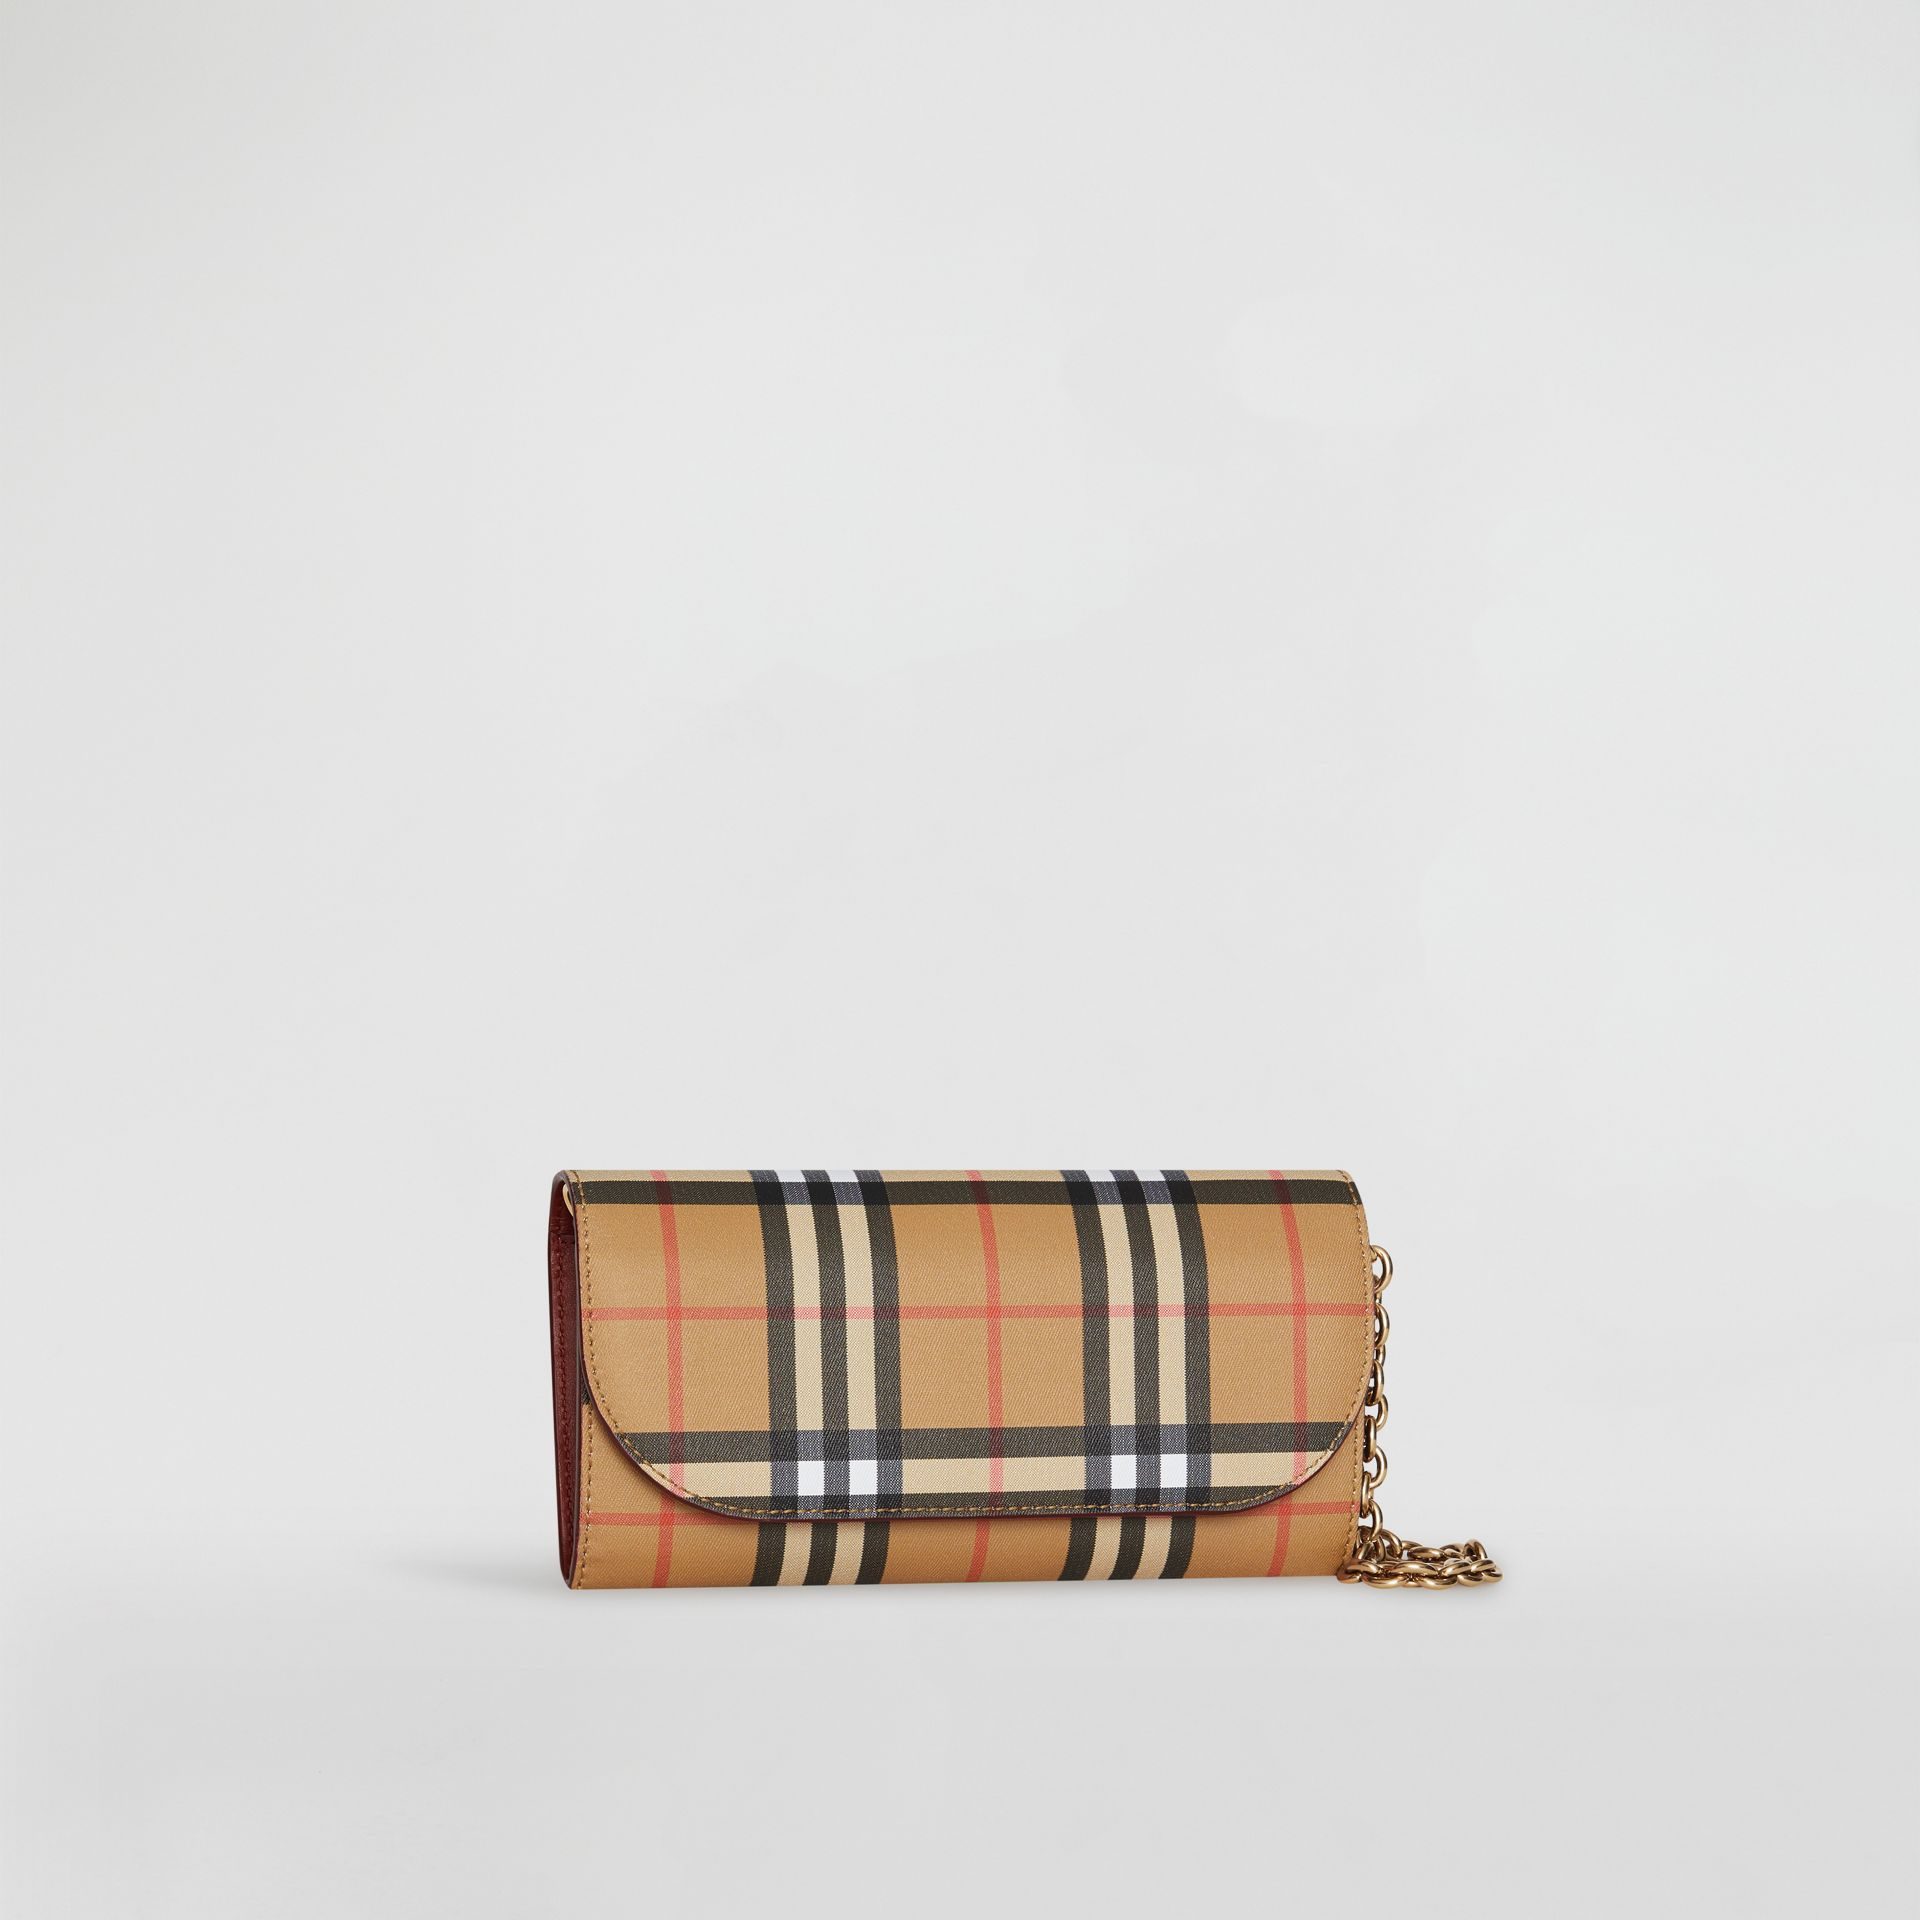 Vintage Check and Leather Wallet with Detachable Strap in Crimson - Women | Burberry Hong Kong S.A.R - gallery image 4